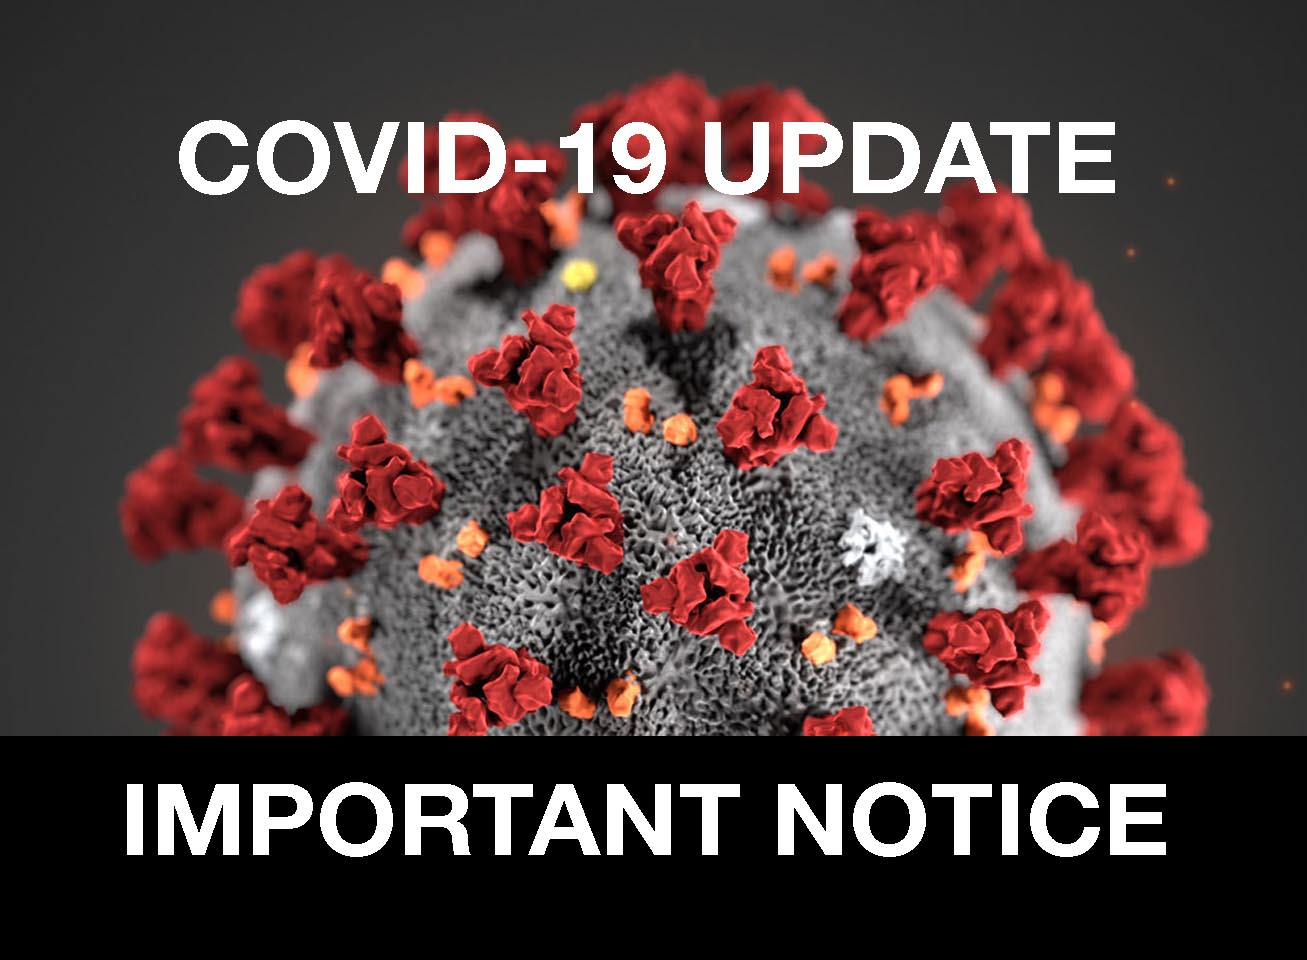 COVID-19 Update 11 May 2020